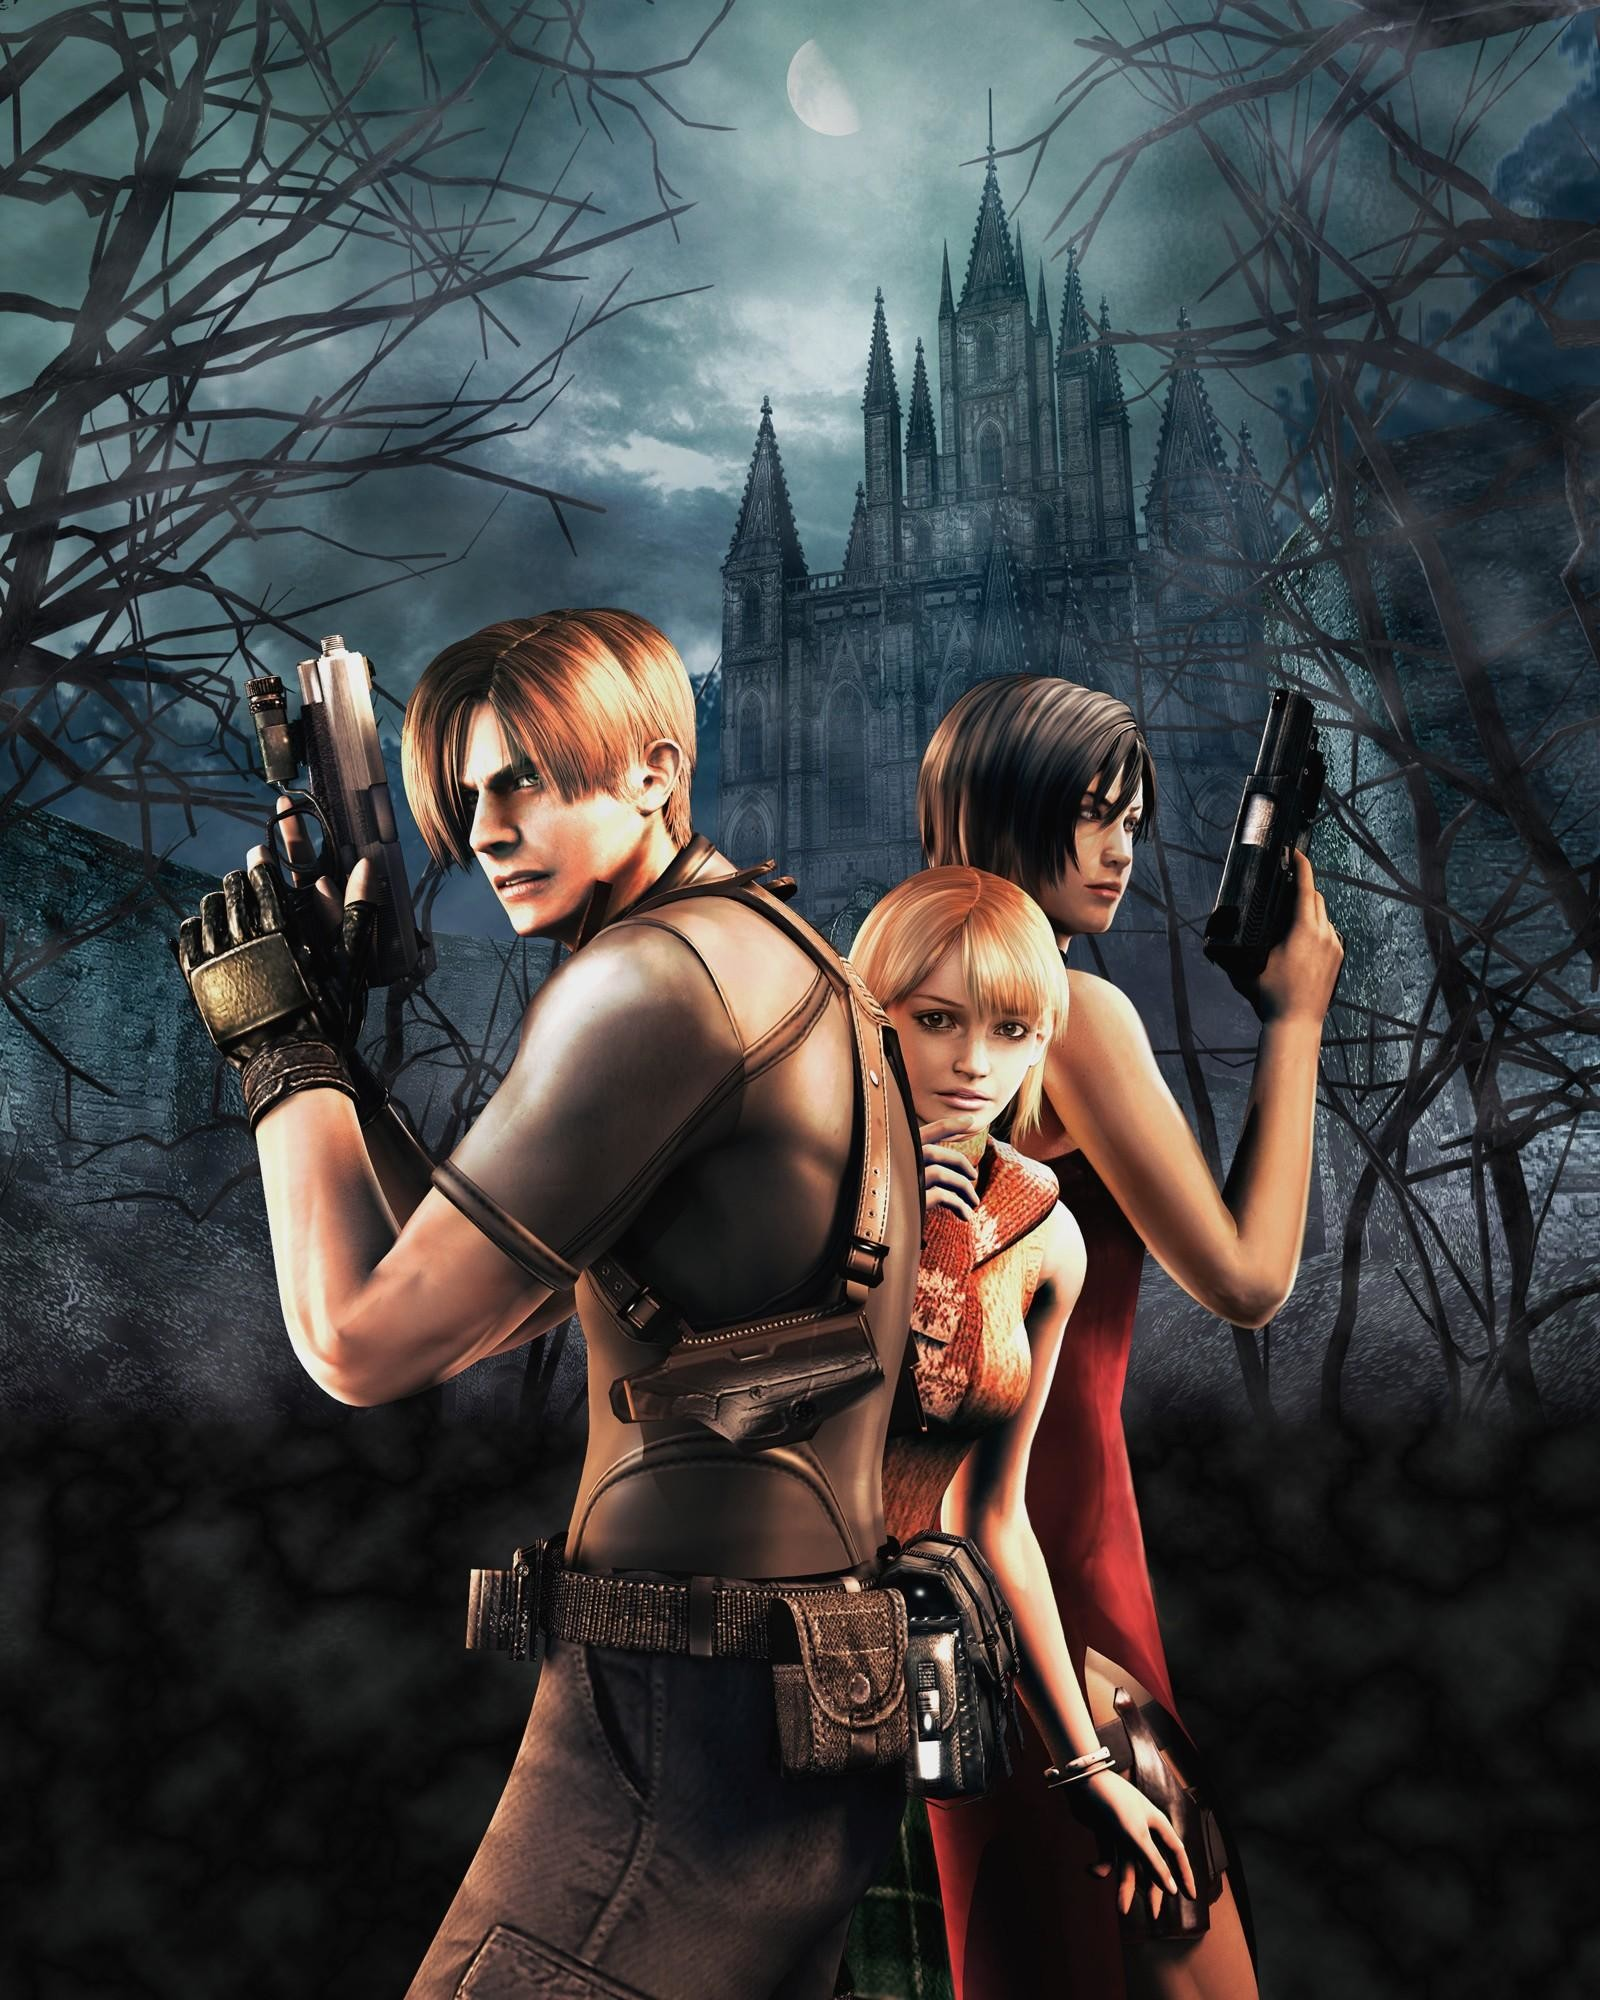 65 Resident Evil Hd Android Iphone Desktop Hd Backgrounds